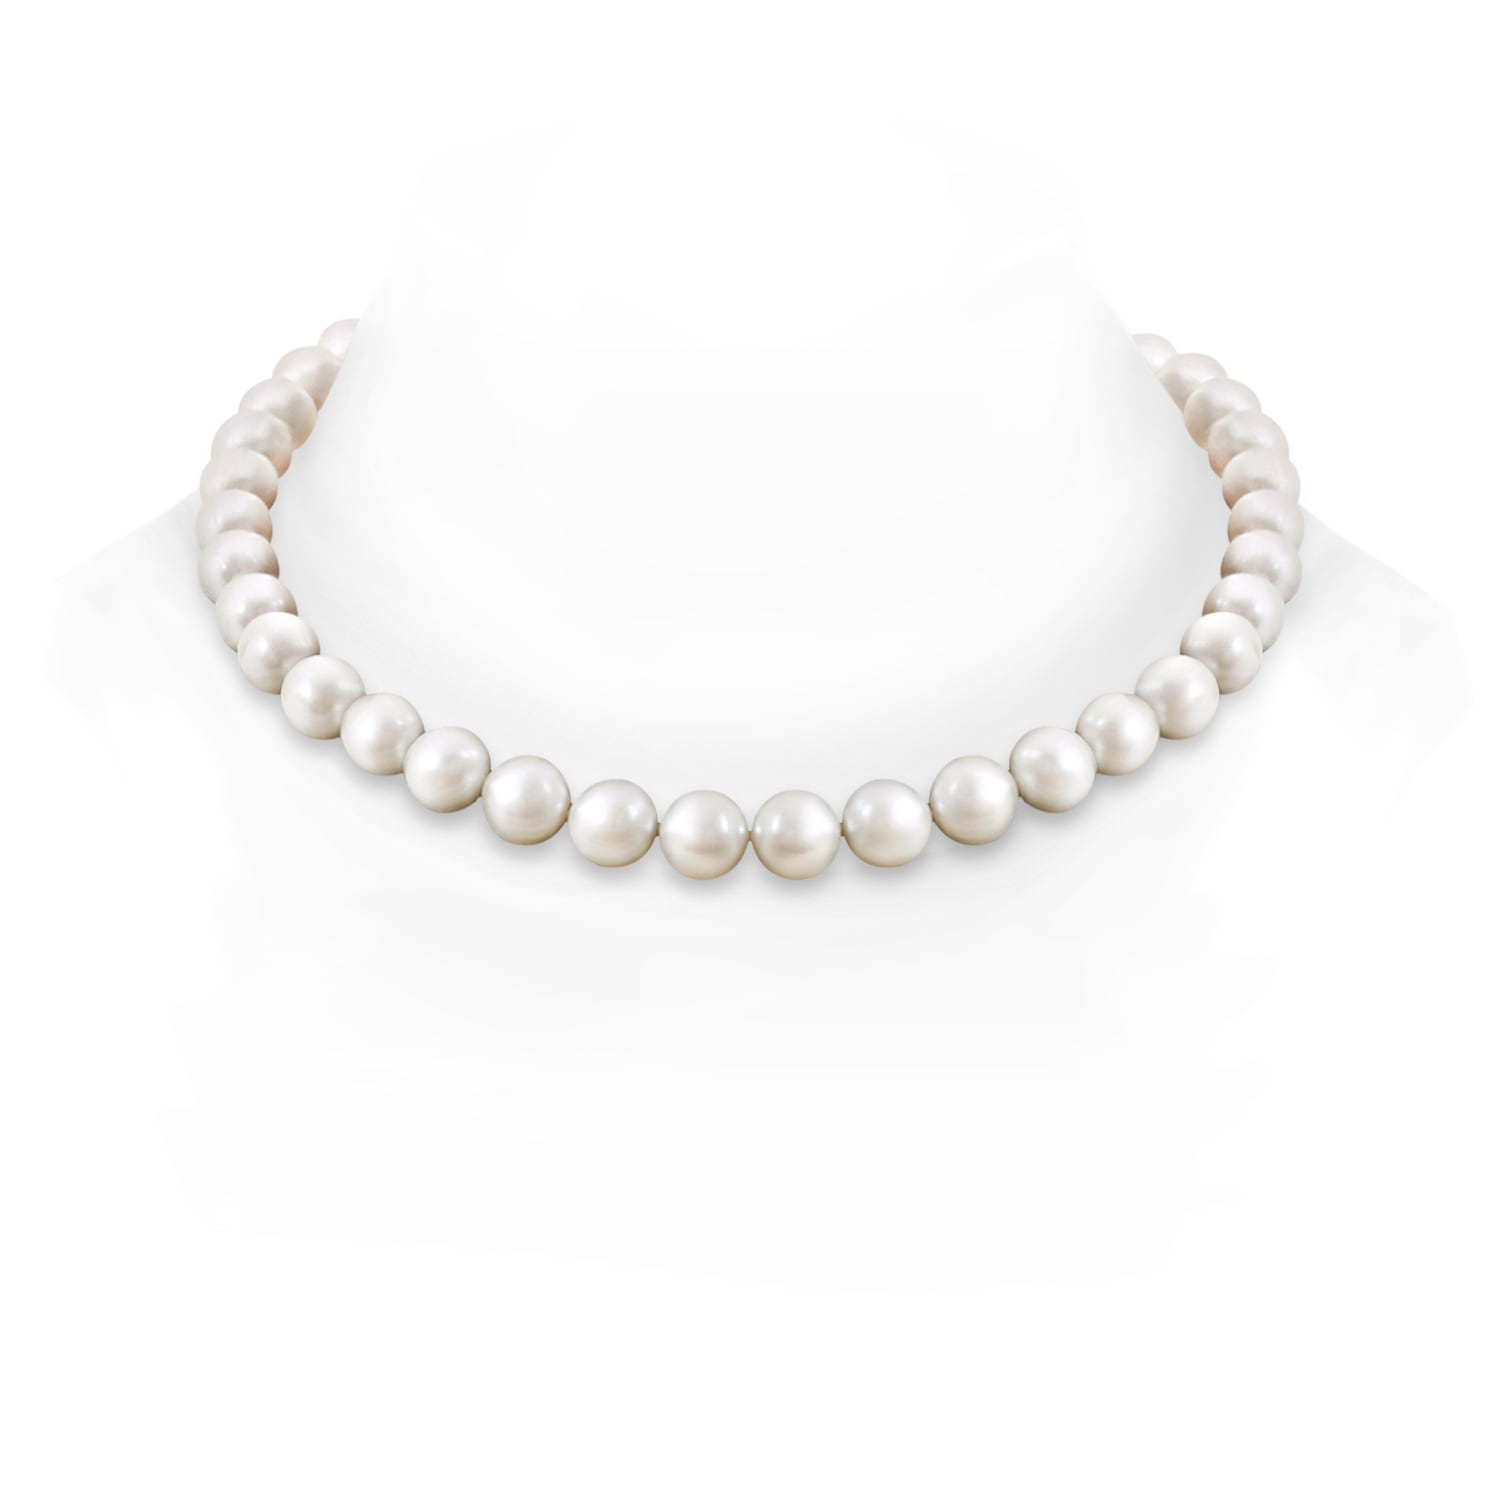 10 11mm, 18 South Sea Cultured Pearl Princess Strand